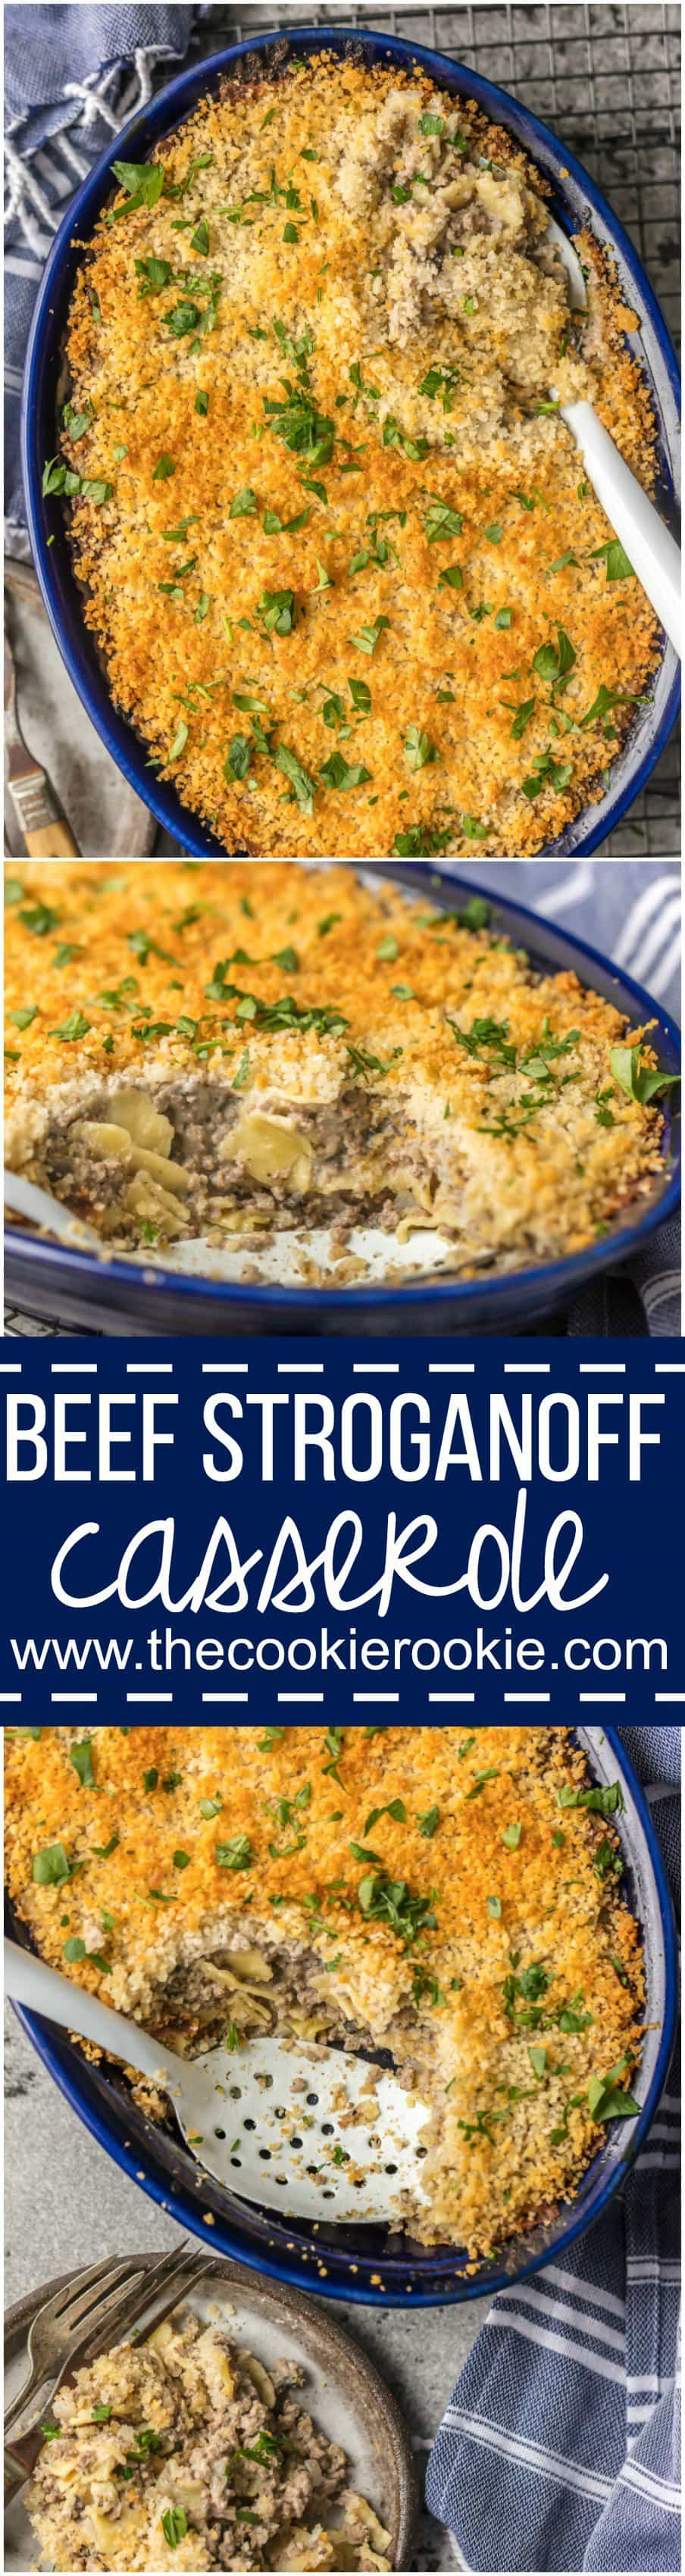 Nothing beats BEEF STROGANOFF CASSEROLE! Such an easy weeknight meal sure to please kids and adults alike! An easy way to make a classic recipe, so yum!